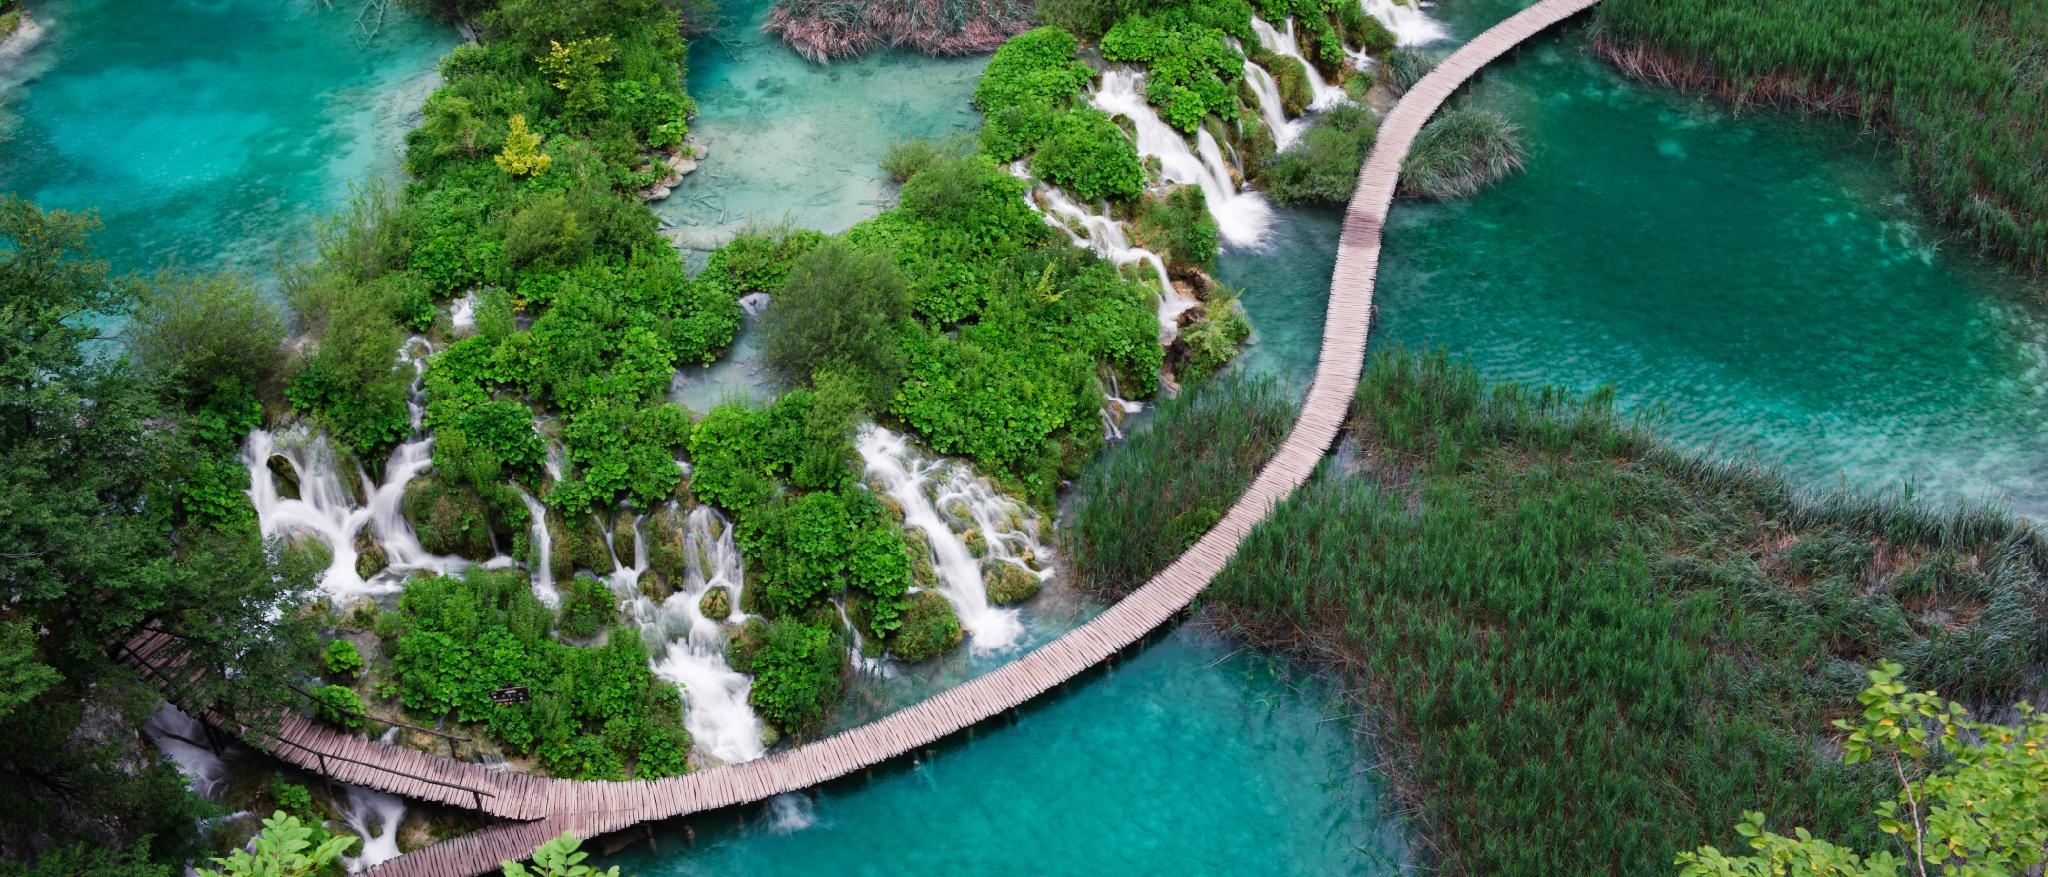 Indonesian Rupiah To Usd Plitvice National Park Hotels Croatia Great Savings And